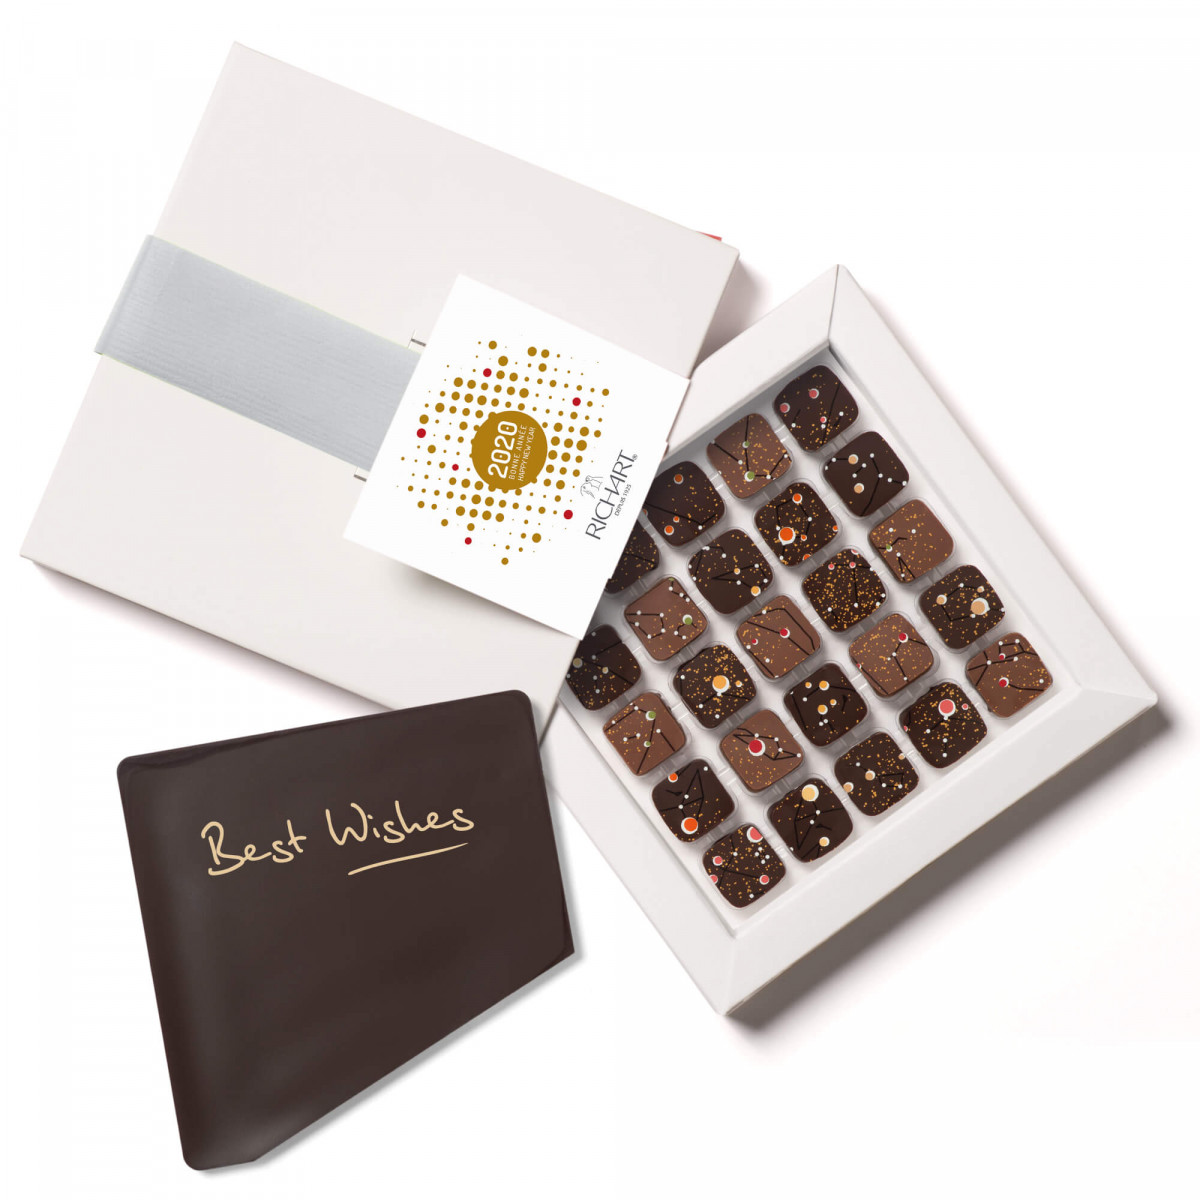 25 filled chocolates + 2020 chocolate card